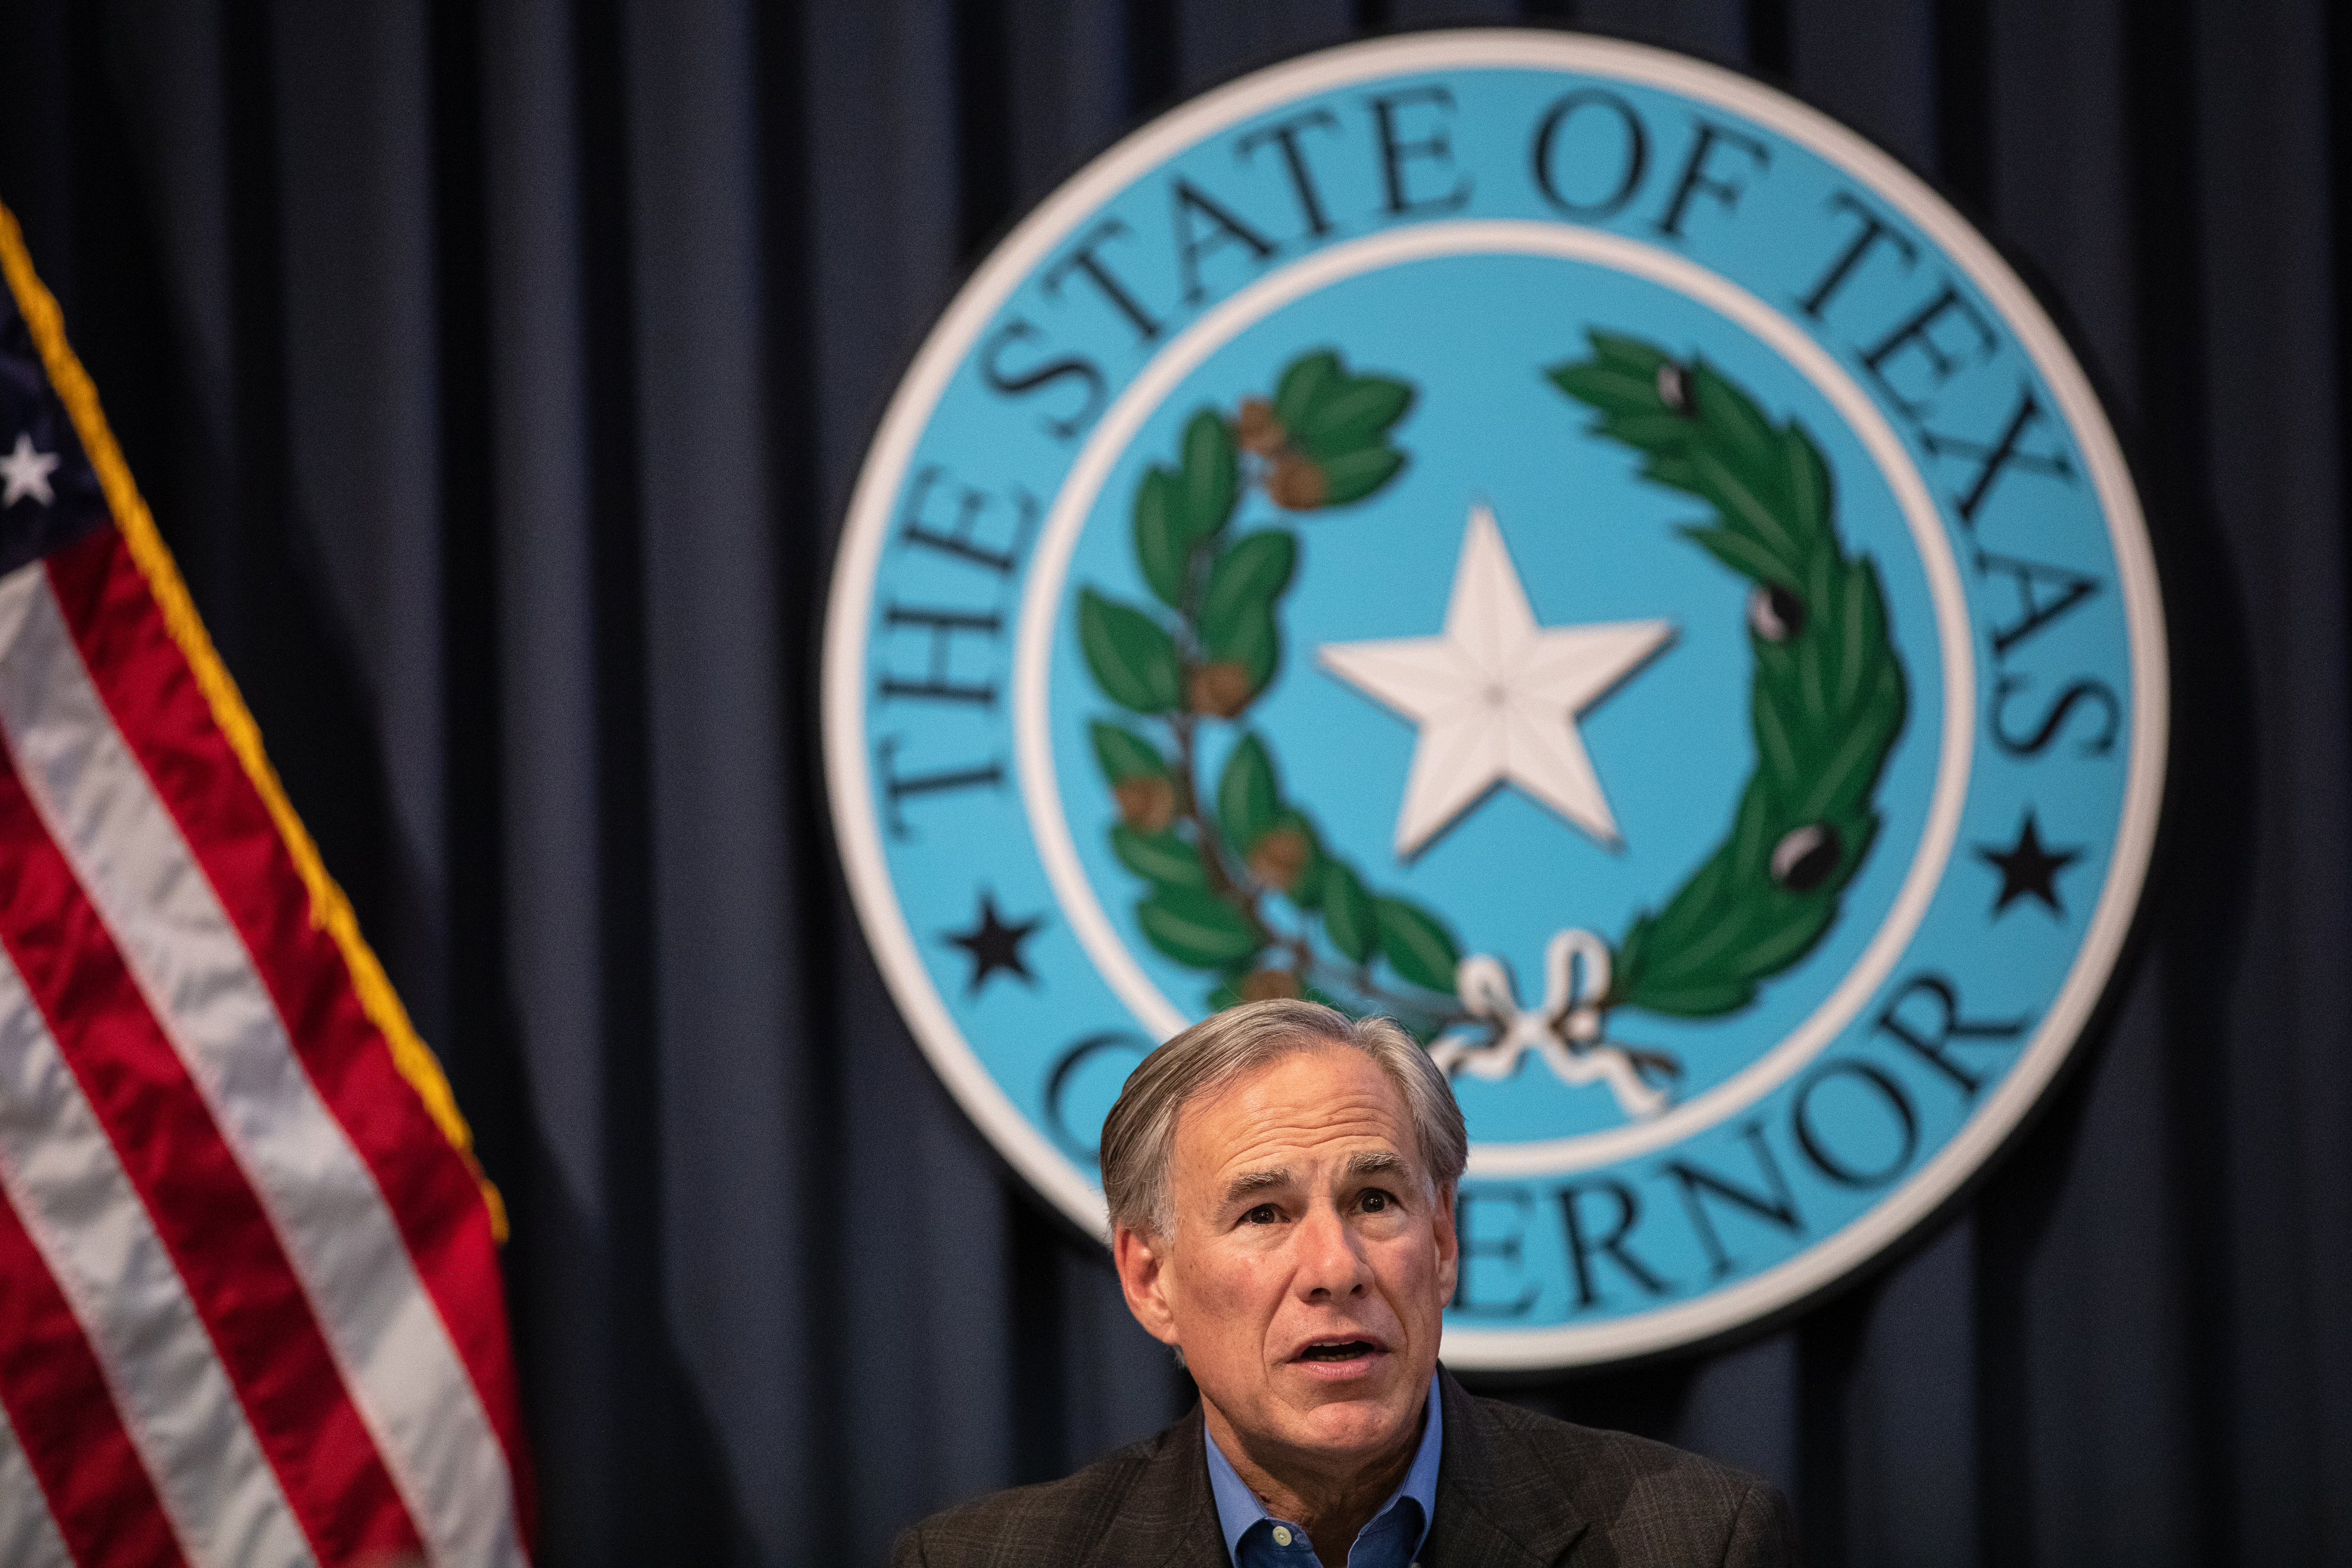 Texas Gov. Greg Abbott  at the Texas State Capitol in Austin, Texas. (Photo by Tamir Kalifa/Getty Images)